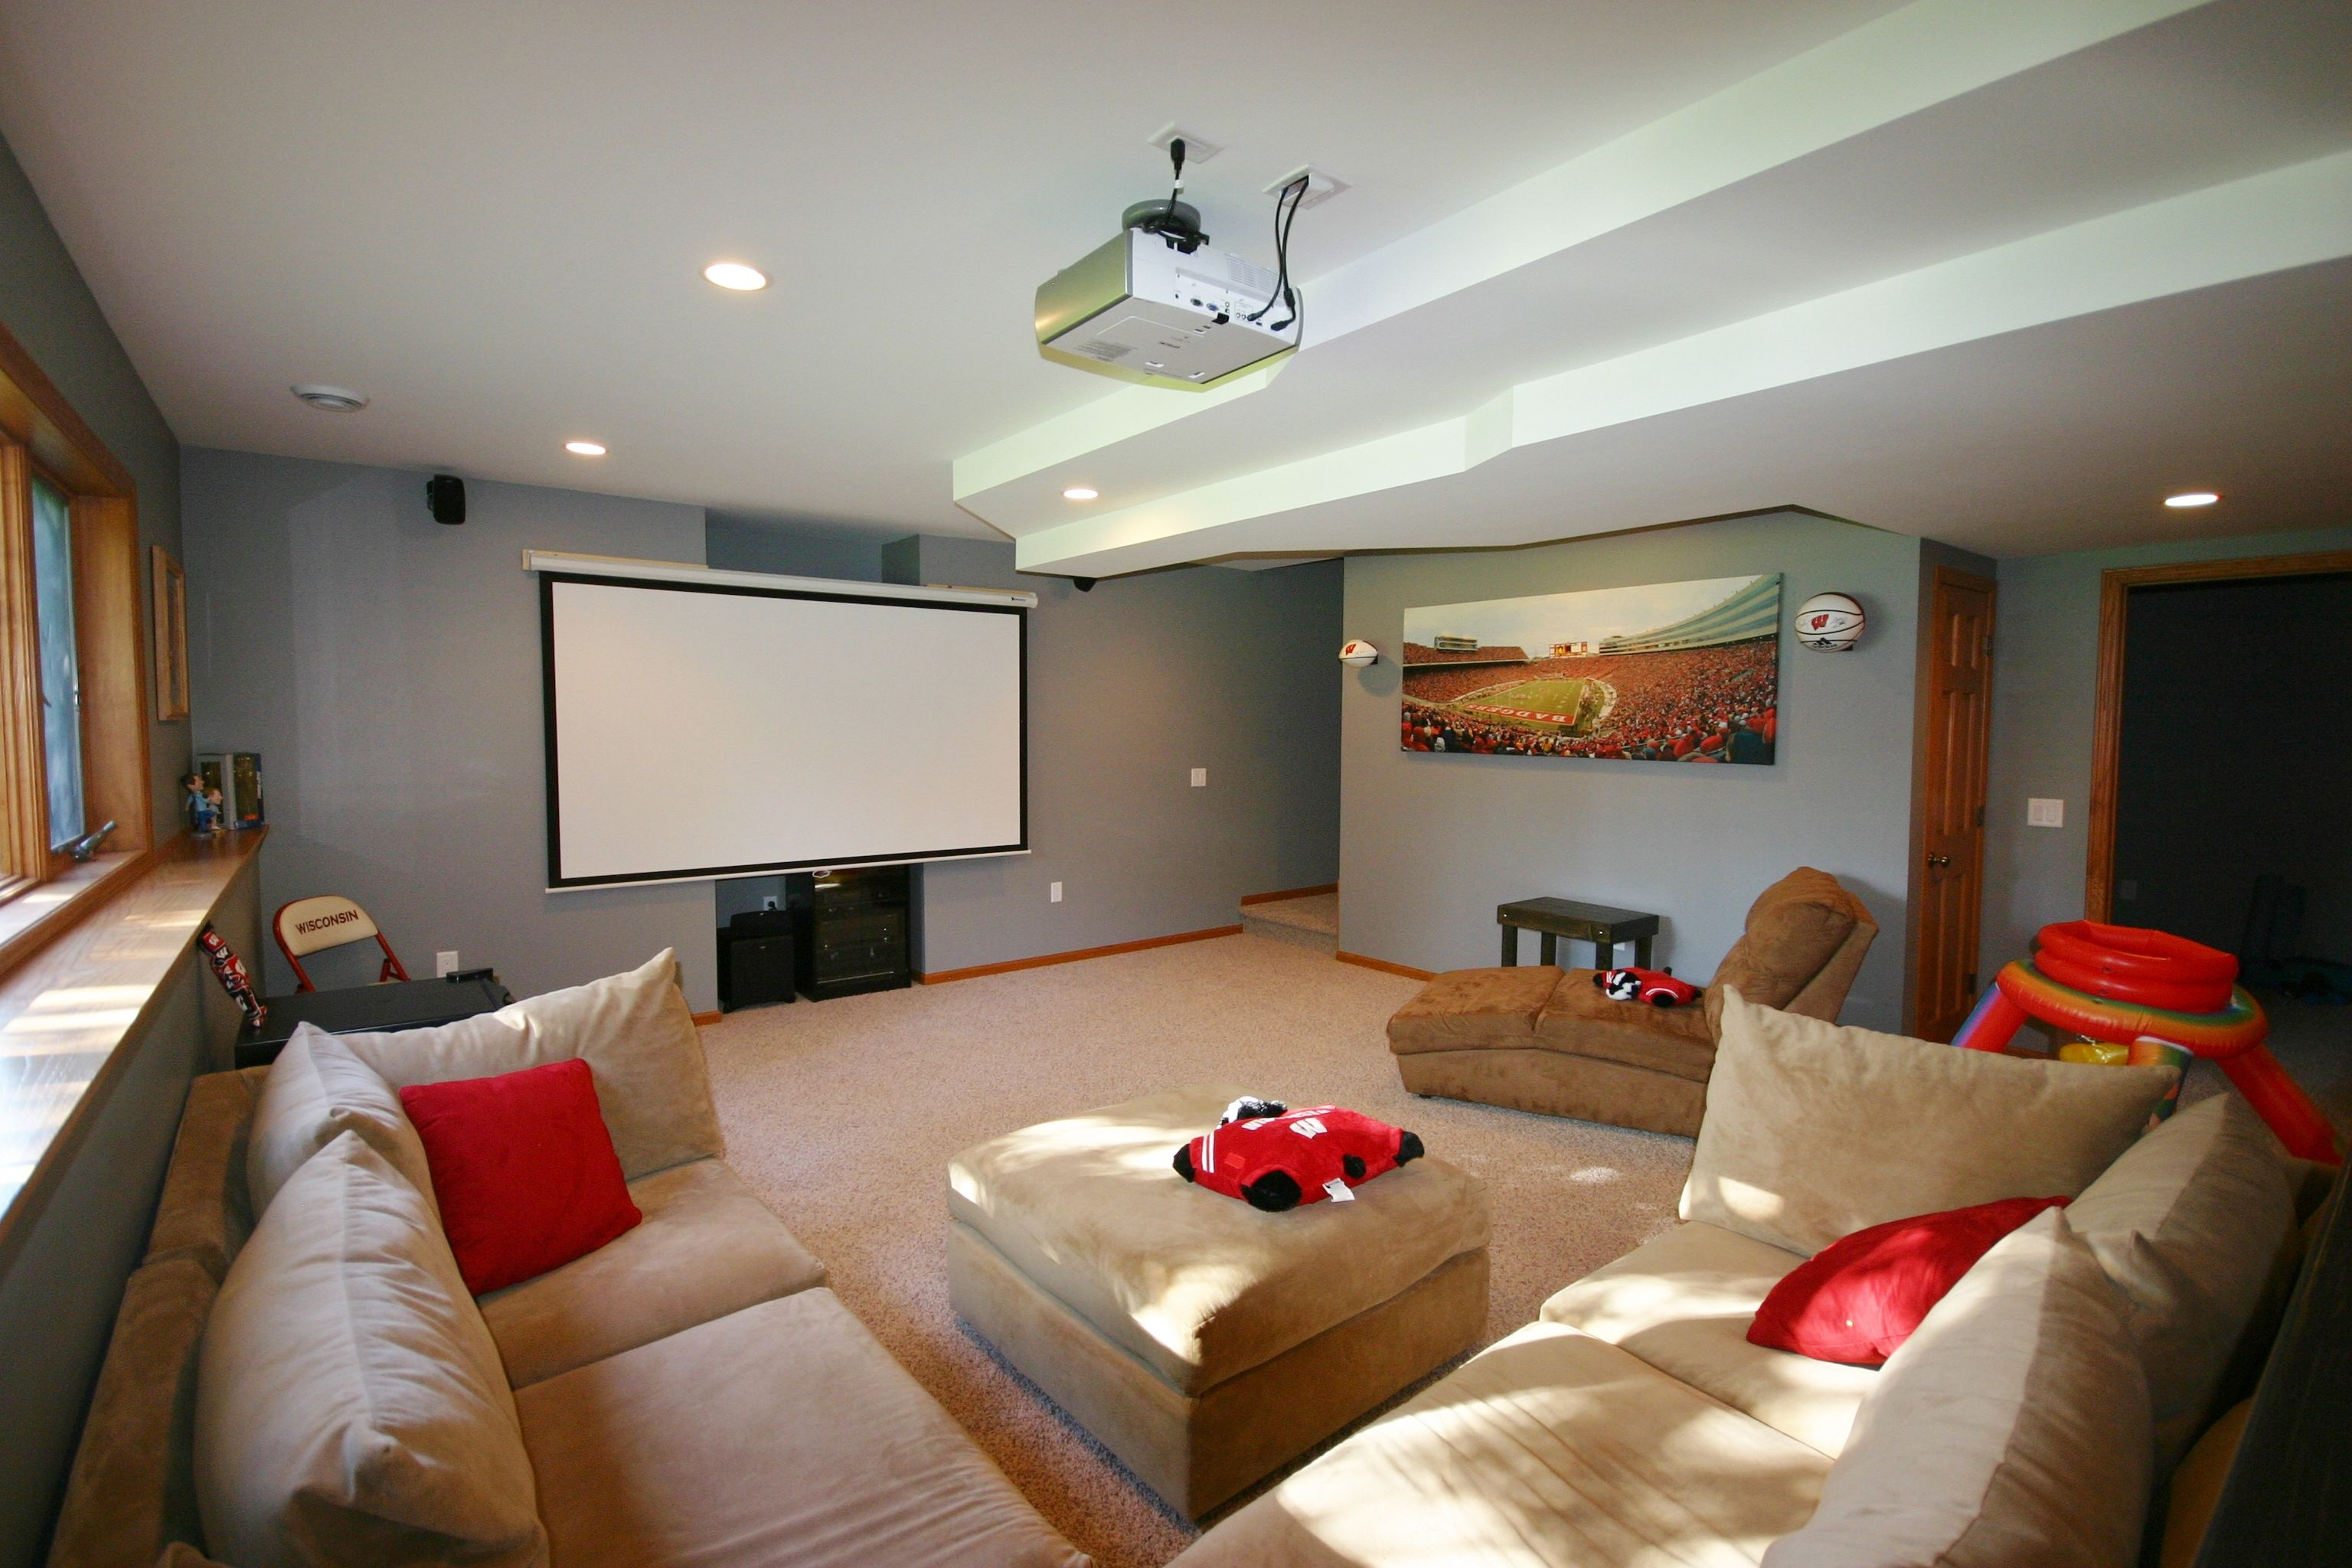 How to ventilate a basement - Basement Finish With Carpeting Oak Trimmed Ledge Projector Screen Man Cave